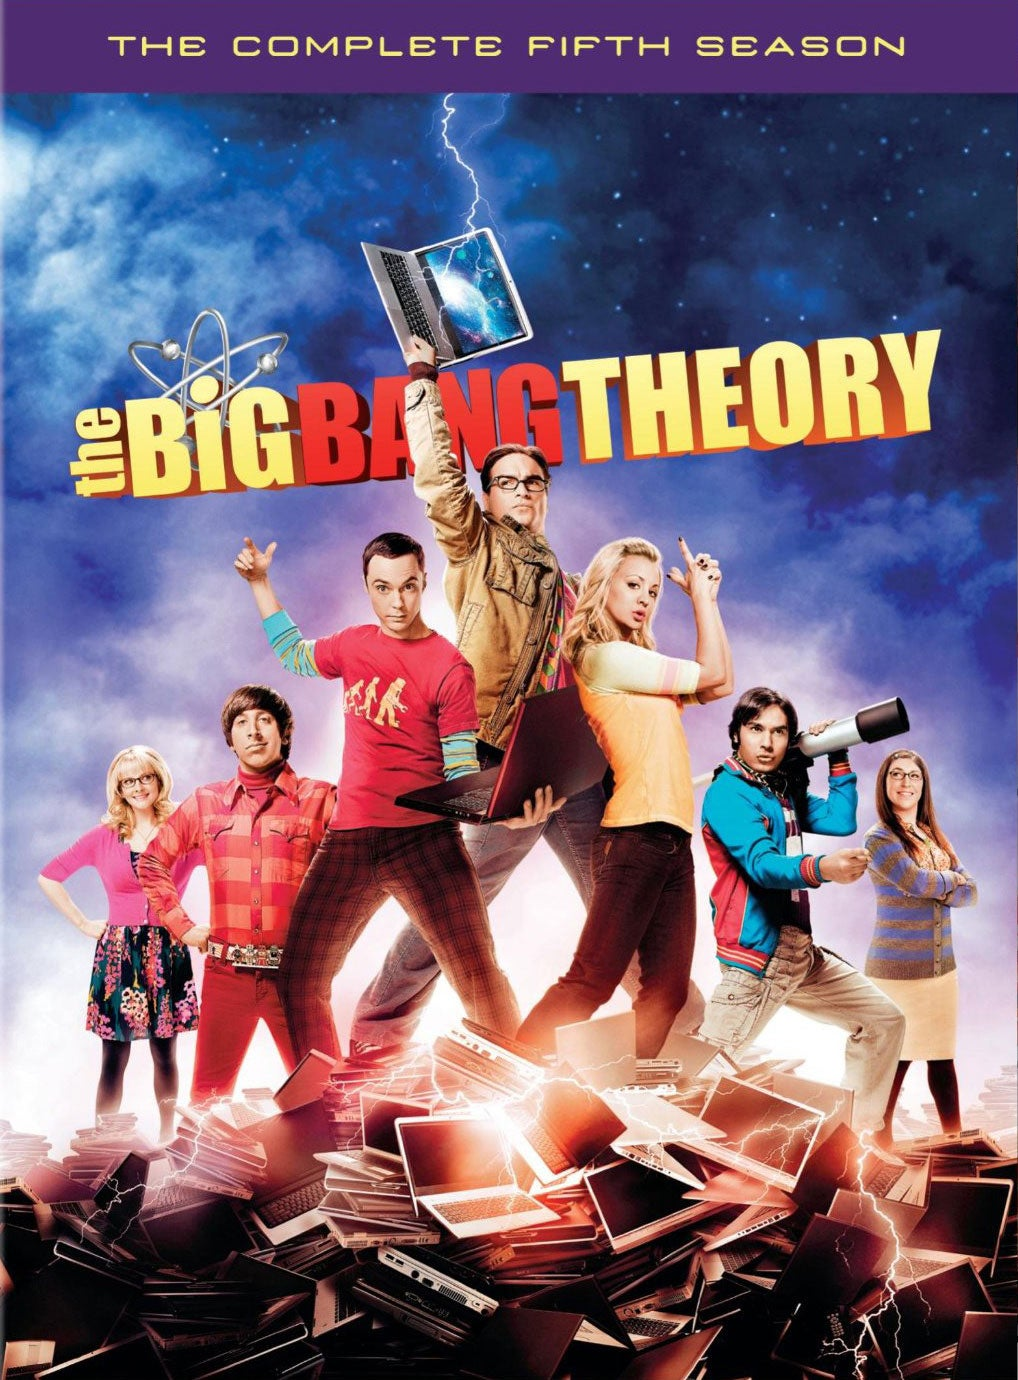 The Big Bang Theory: The Complete Fifth Season (DVD)